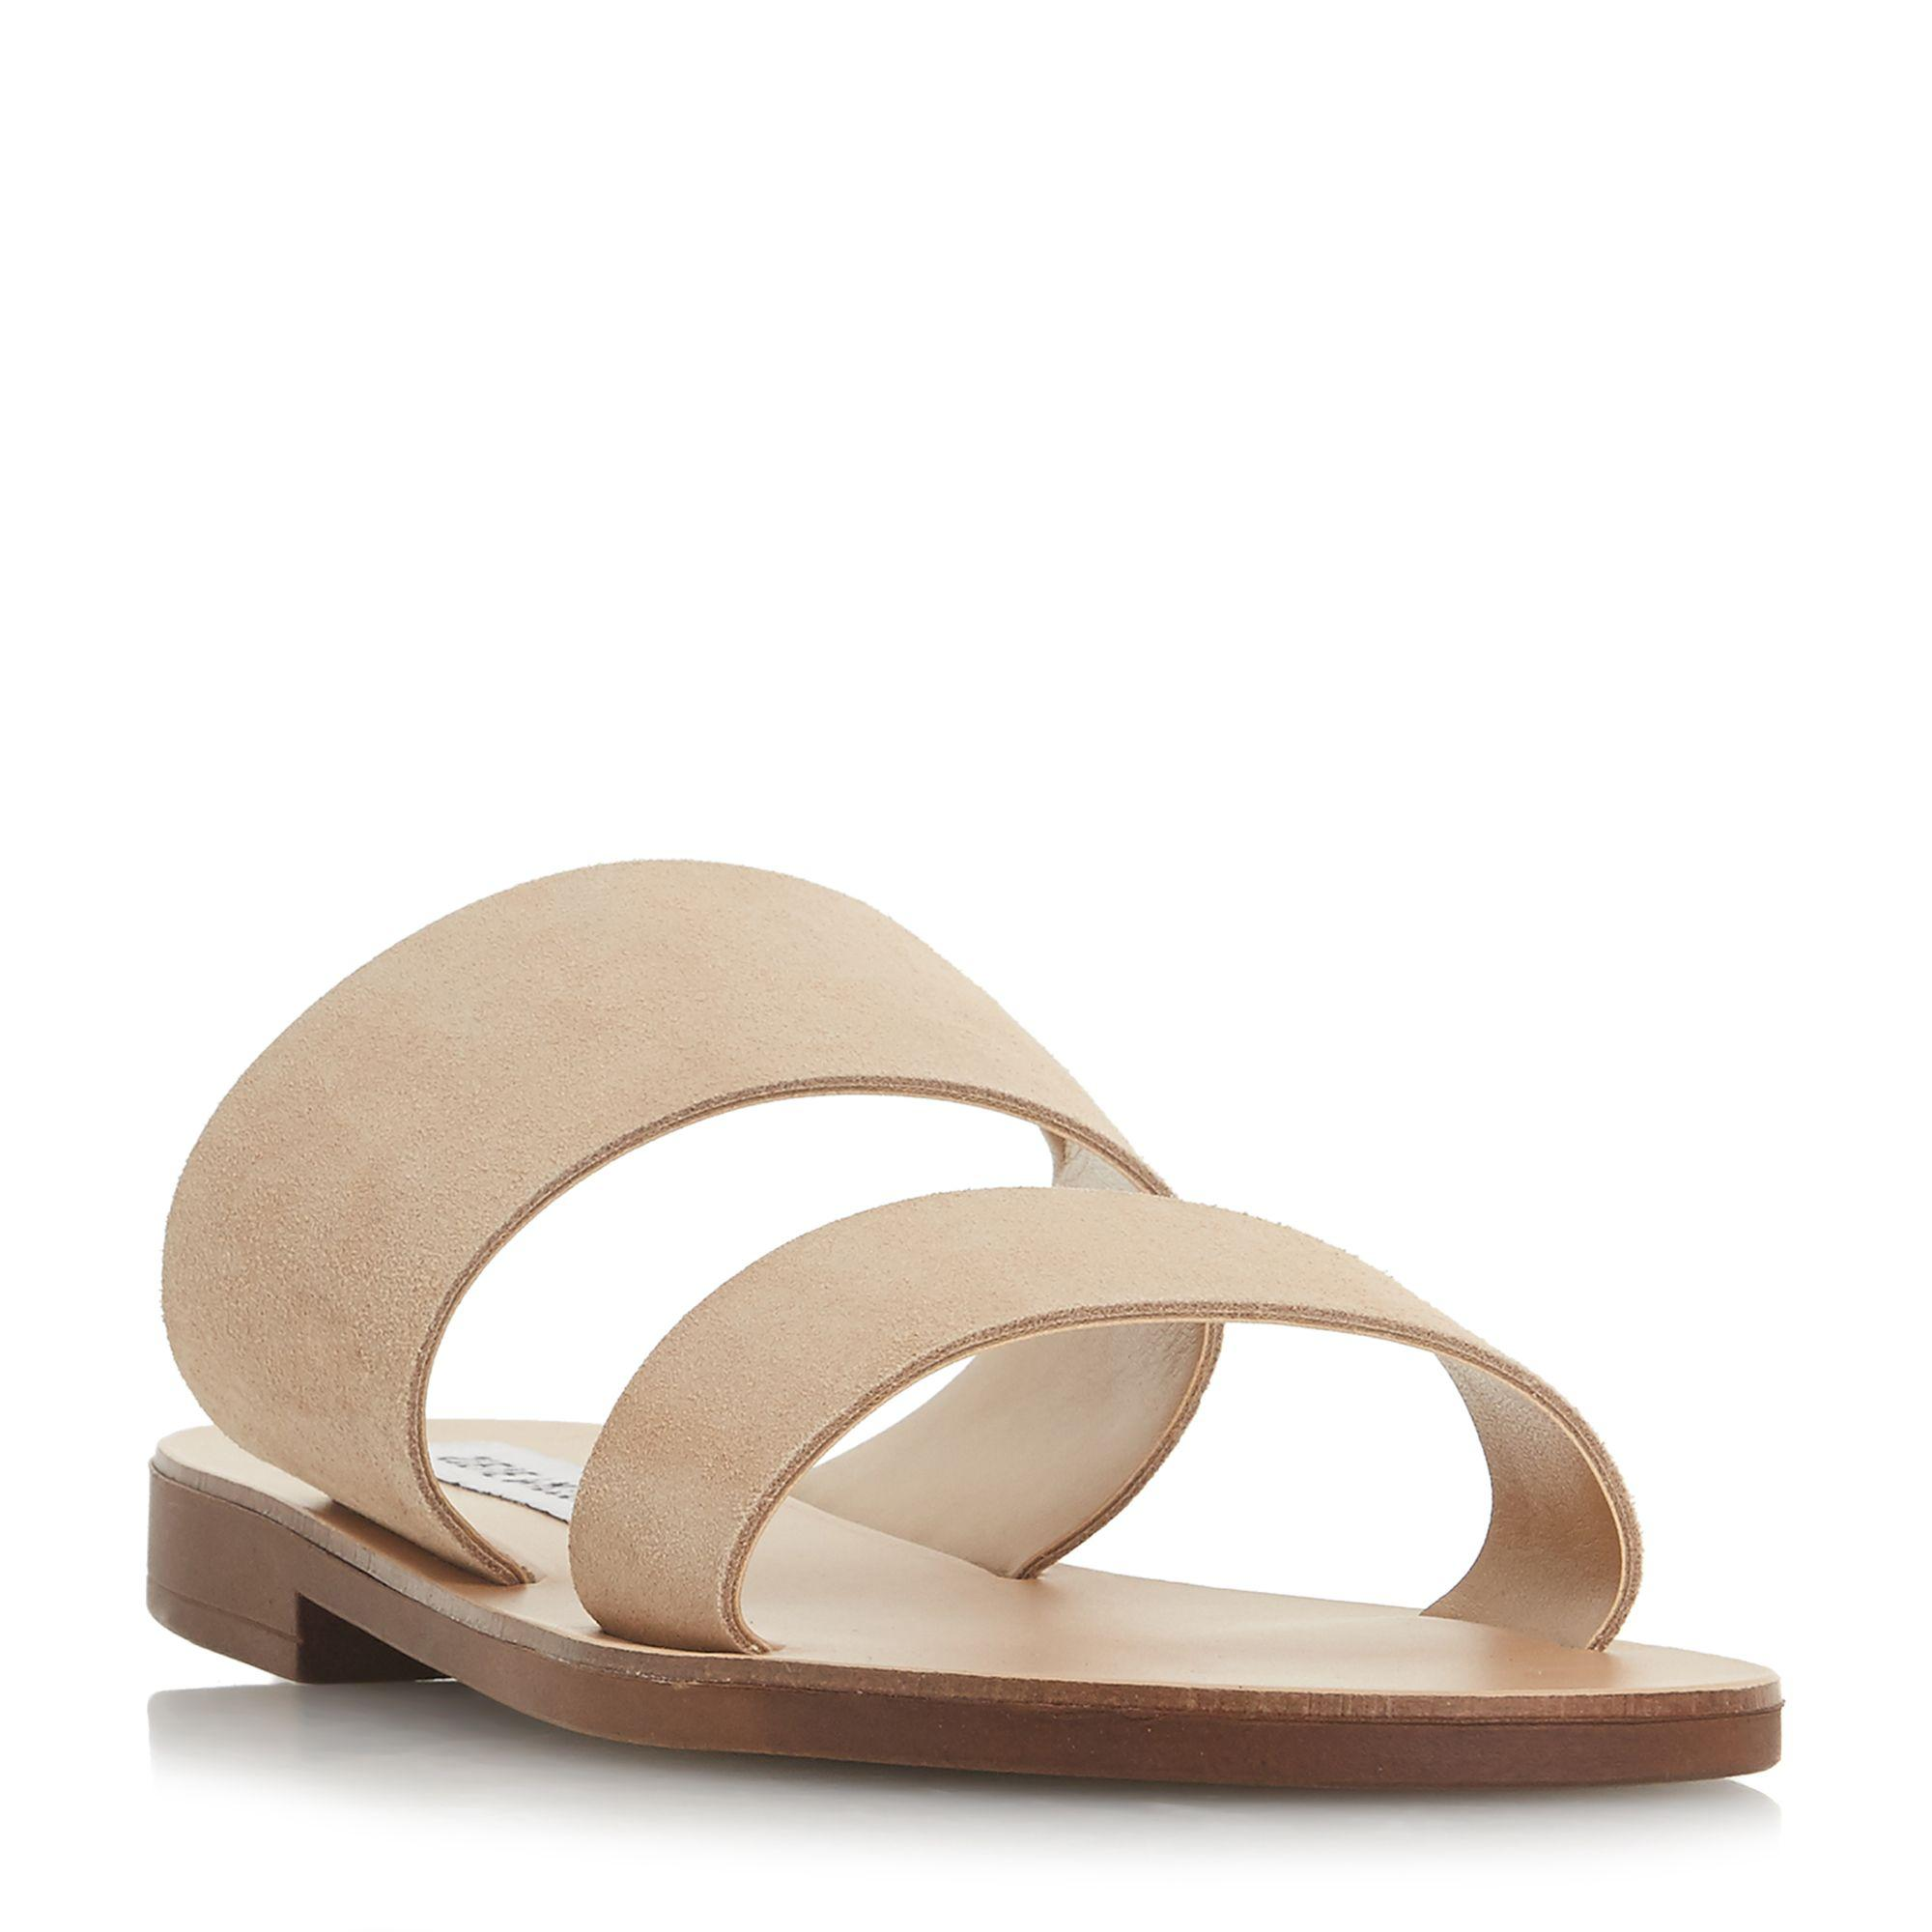 buy cheap really Taupe suede 'Native' mule sandals cheap sale the cheapest 8OXoZx